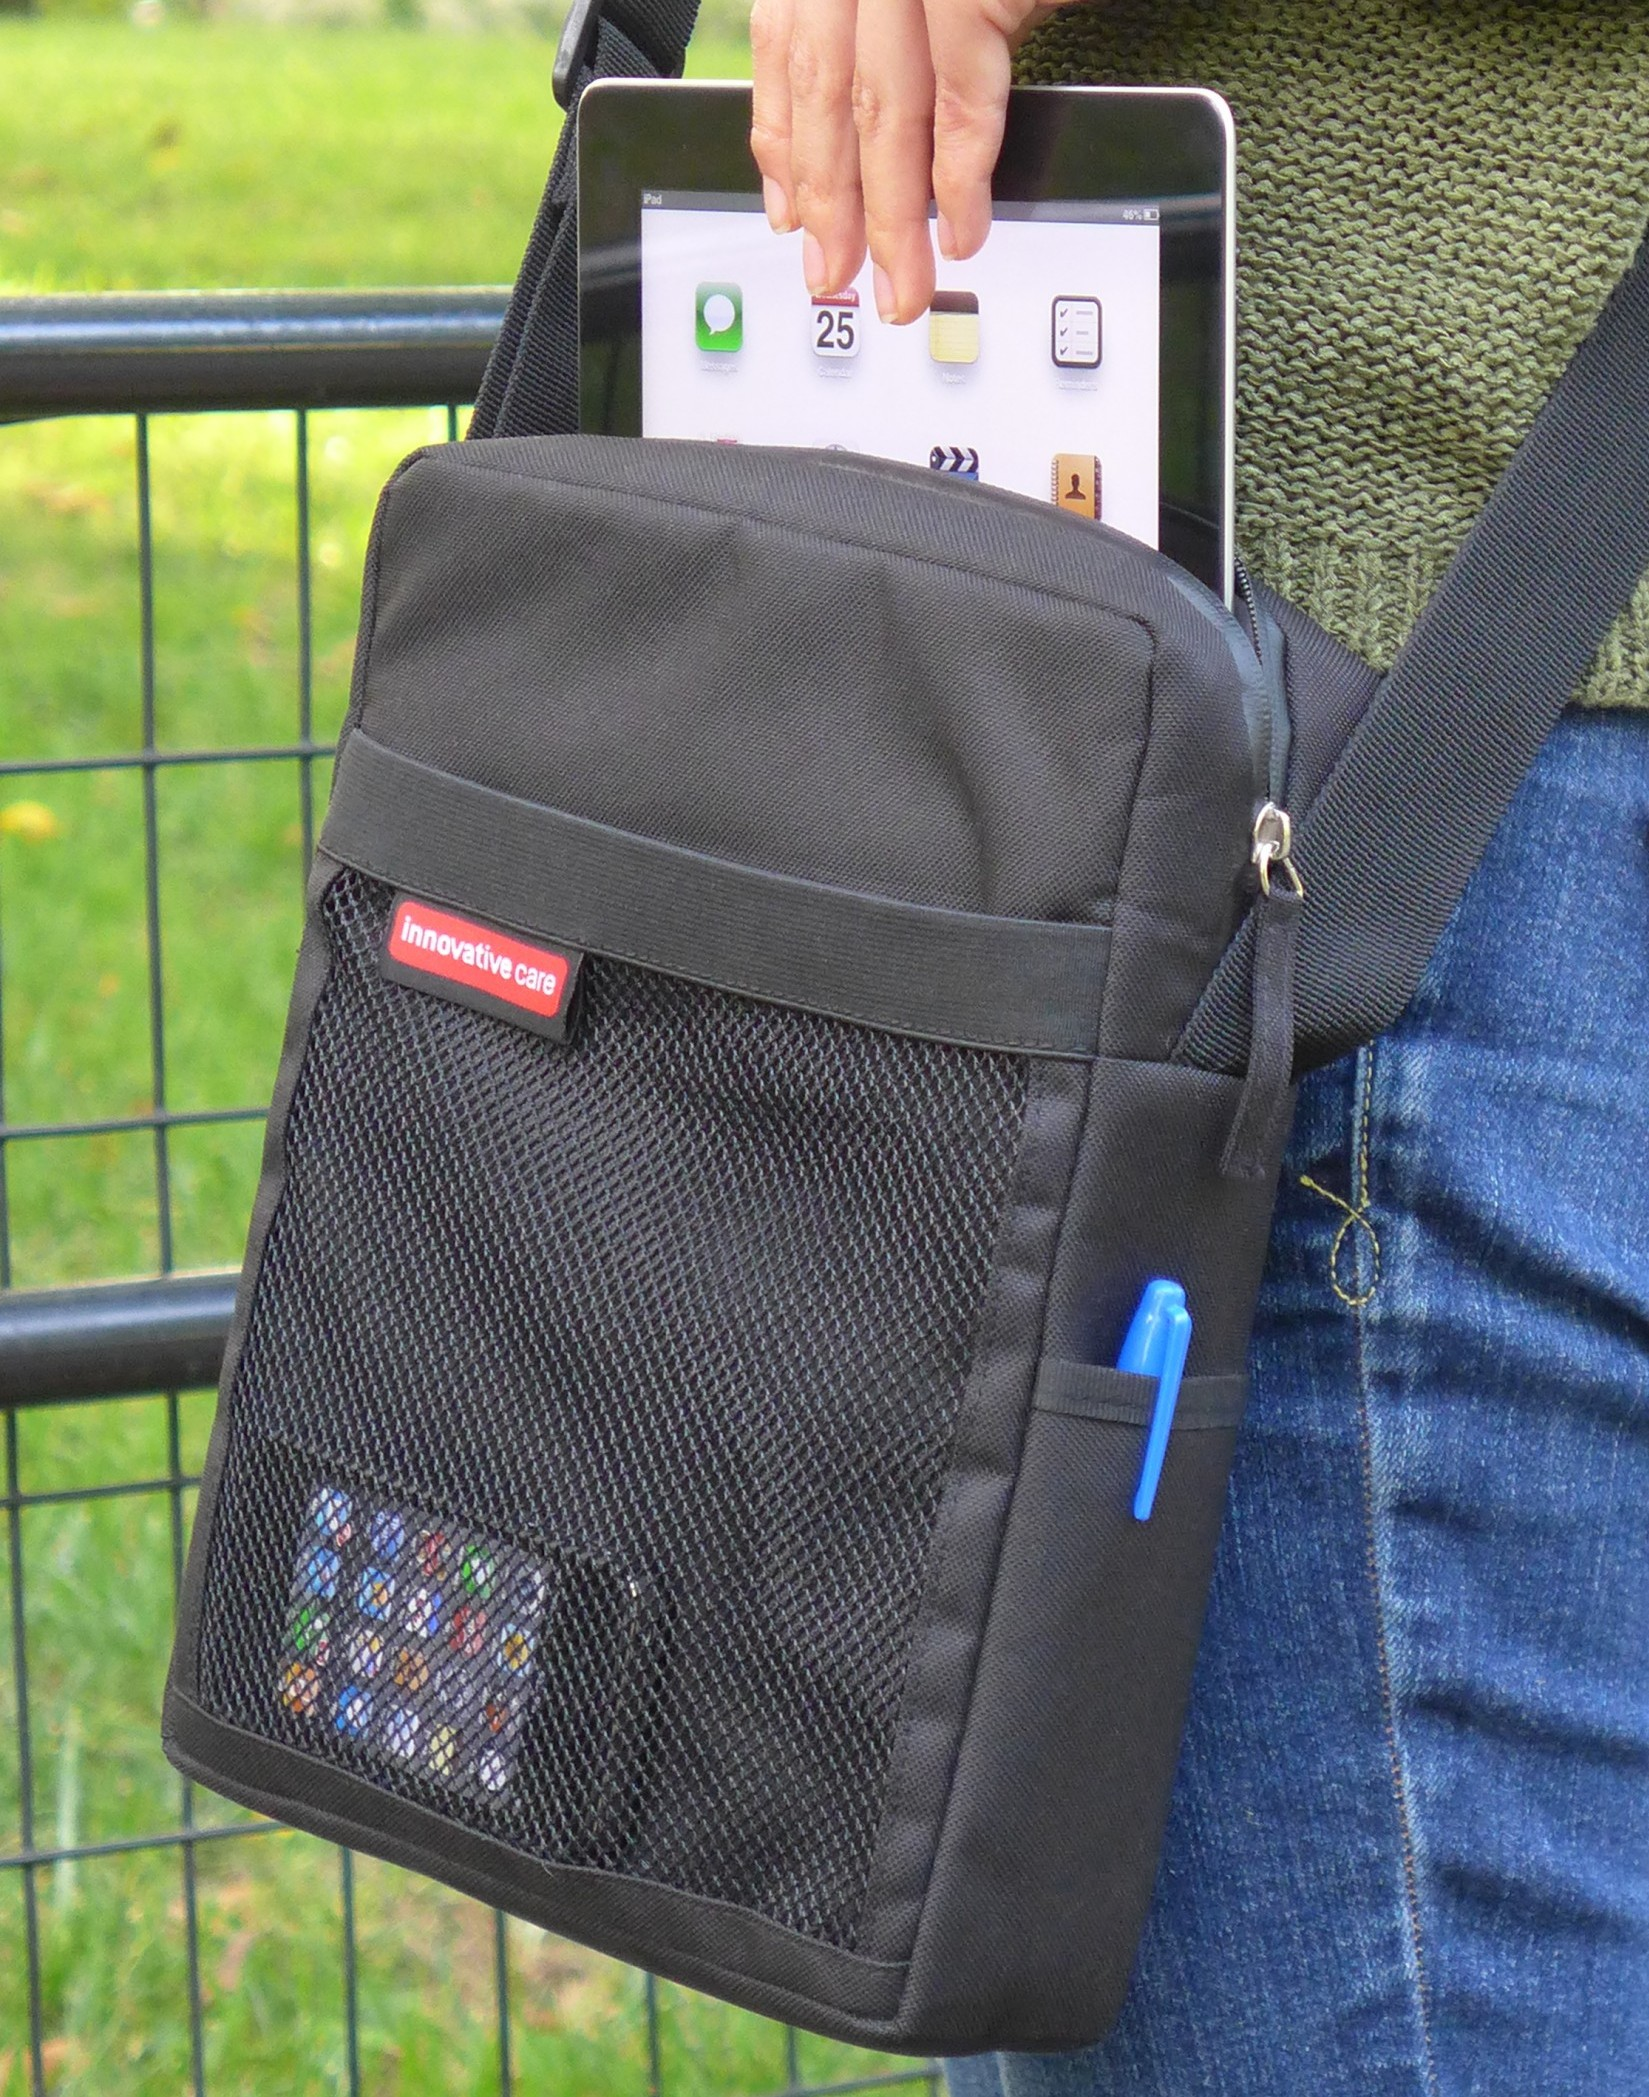 tablet shoulder strap carry bag, durable and rugged for iPad, netbook or Asus Chromebook Flip with padded pocket and mesh pockets